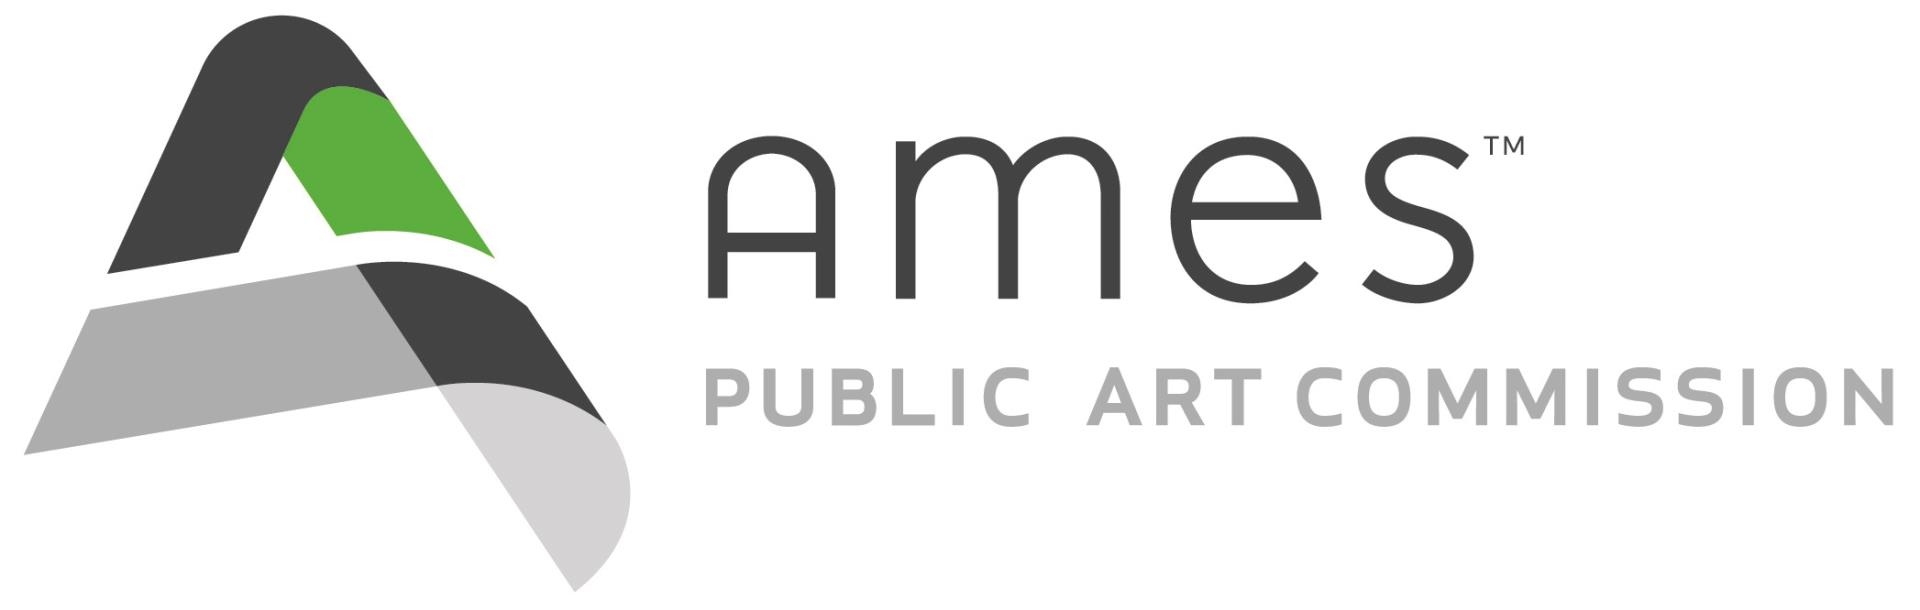 Ames Public Art Commission logo